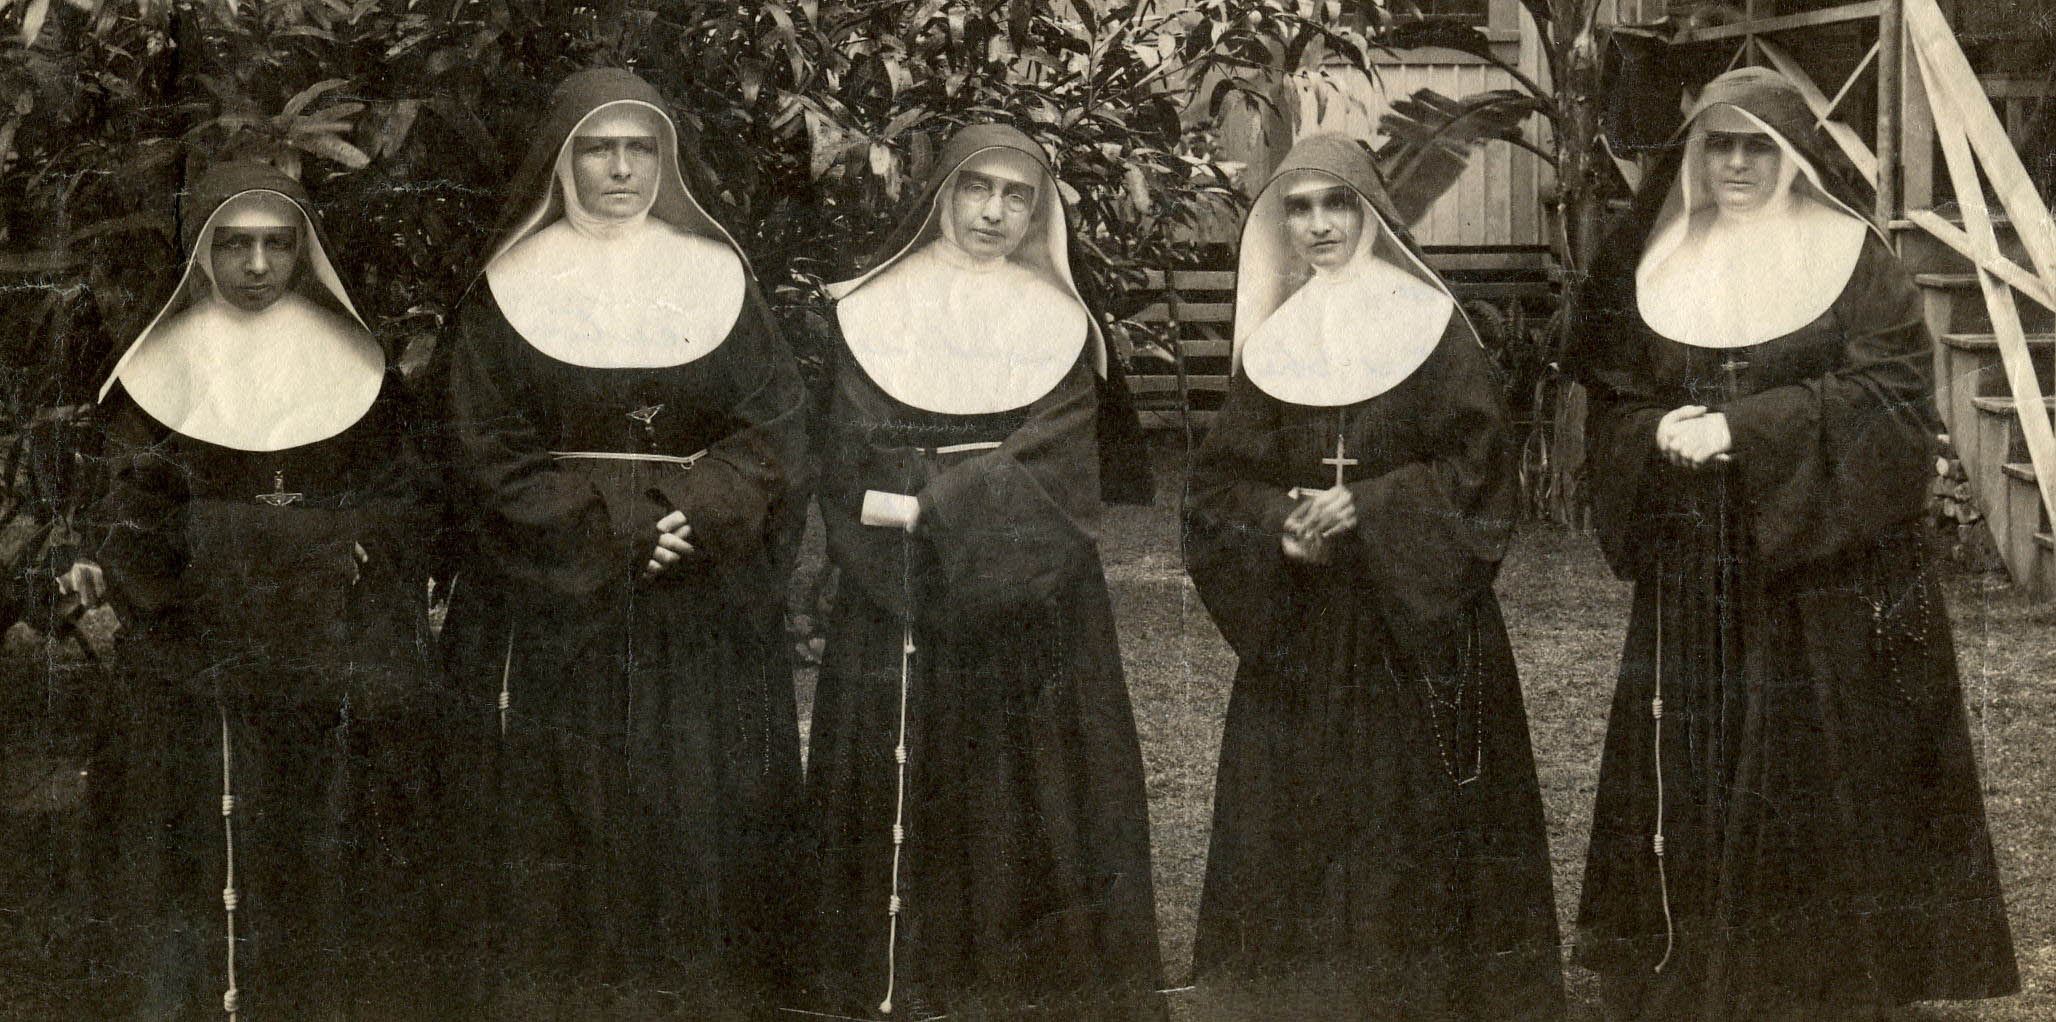 Group 1899 ed - Beloved mother of outcasts, Mother Marianne Cope: The extraordinary life of a hometown saint